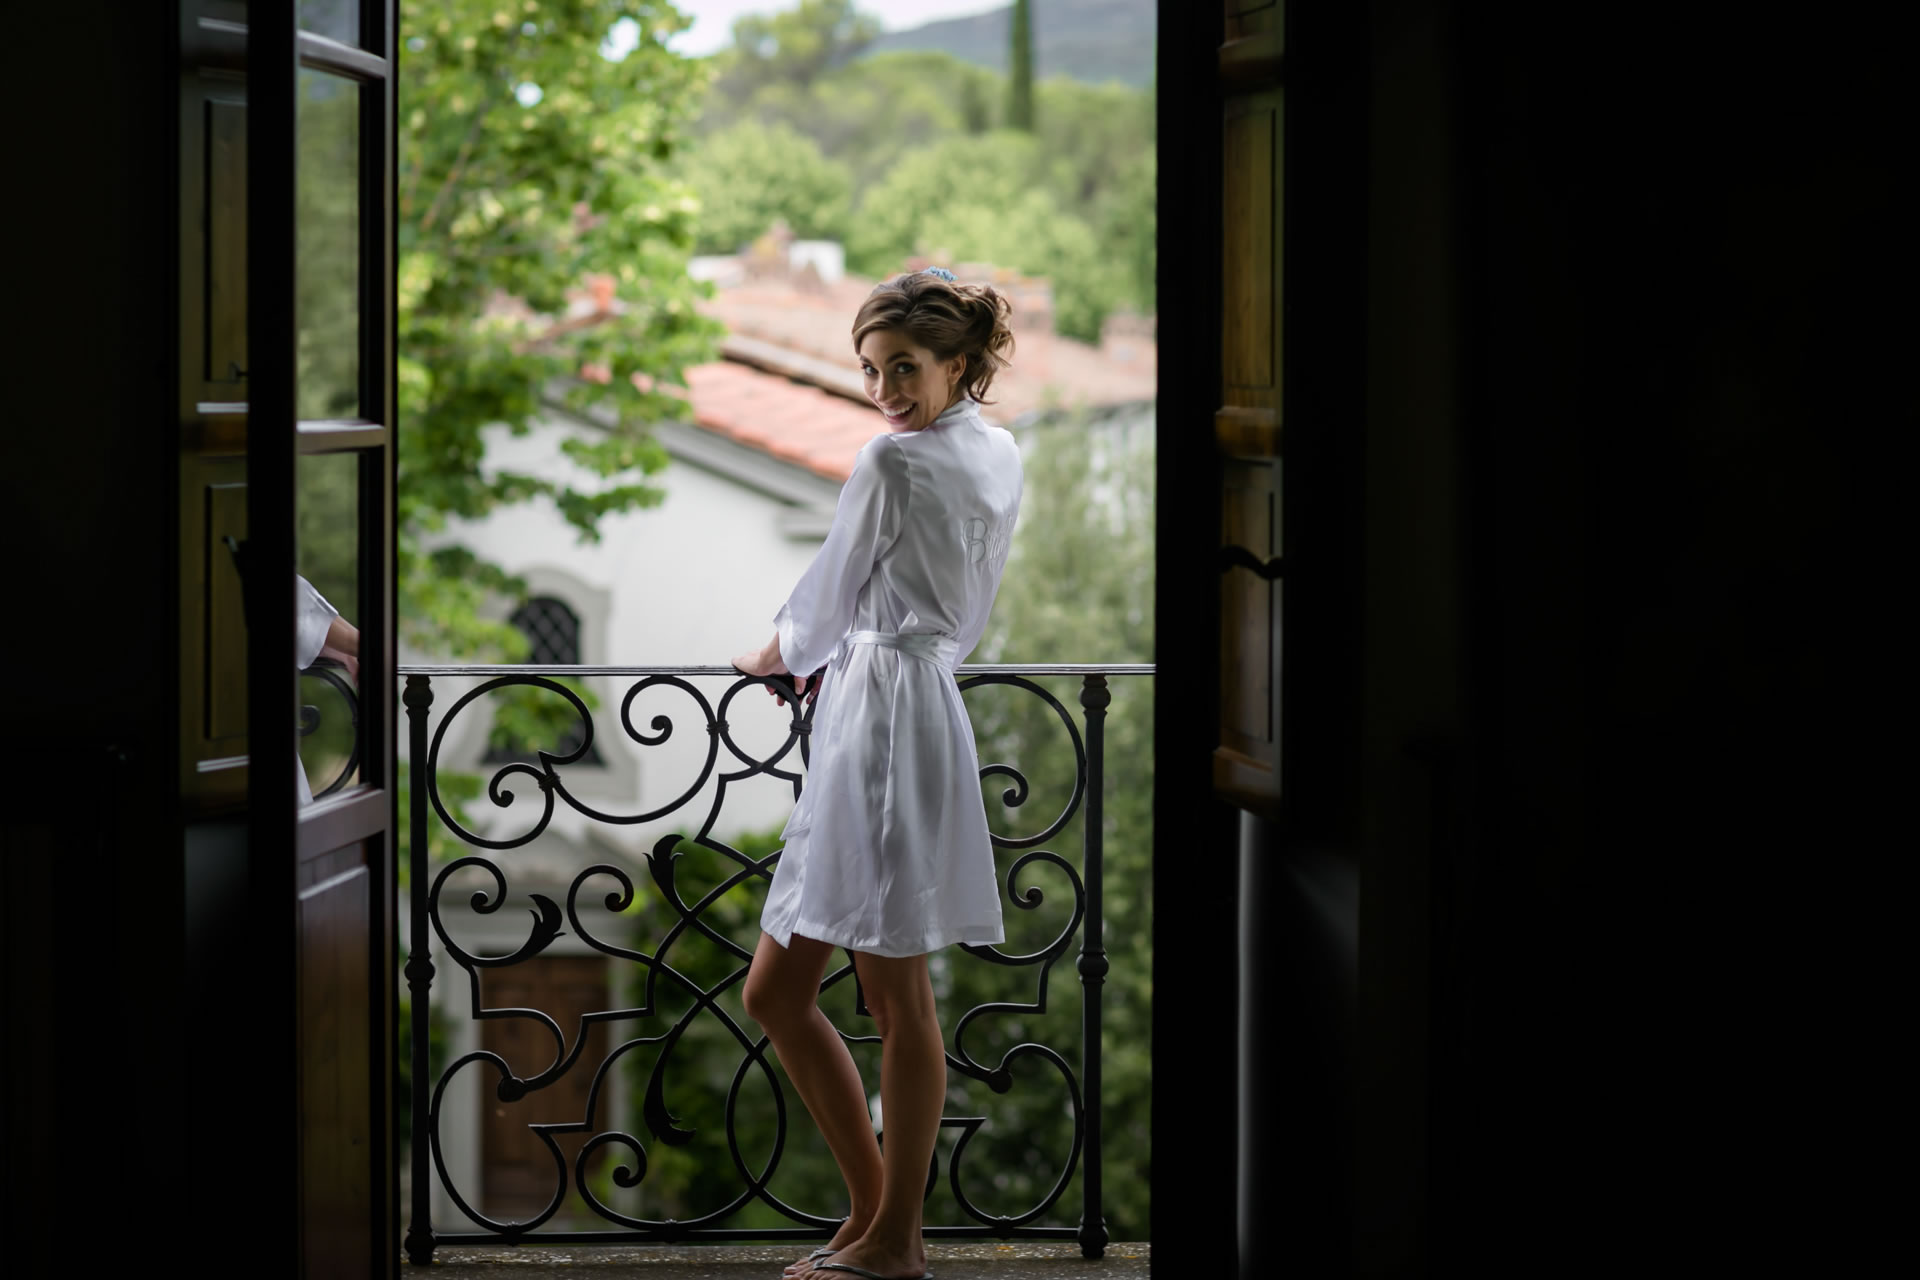 Waiting - 4 :: Amazing wedding day at Il Borro :: Luxury wedding photography - 3 :: Waiting - 4